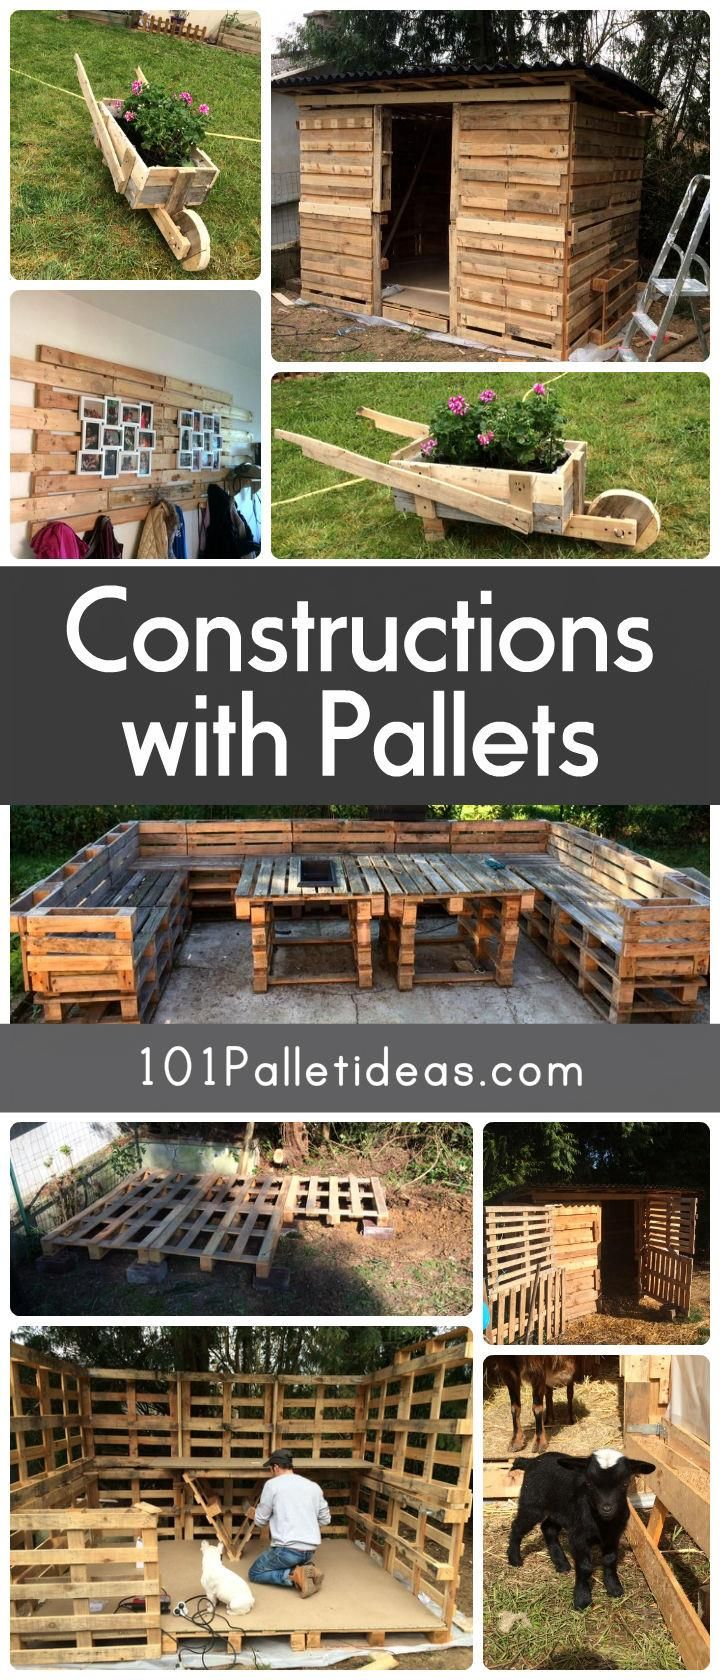 Amazing Constructions with Pallets - 101 Pallet Ideas and Pallet Projects